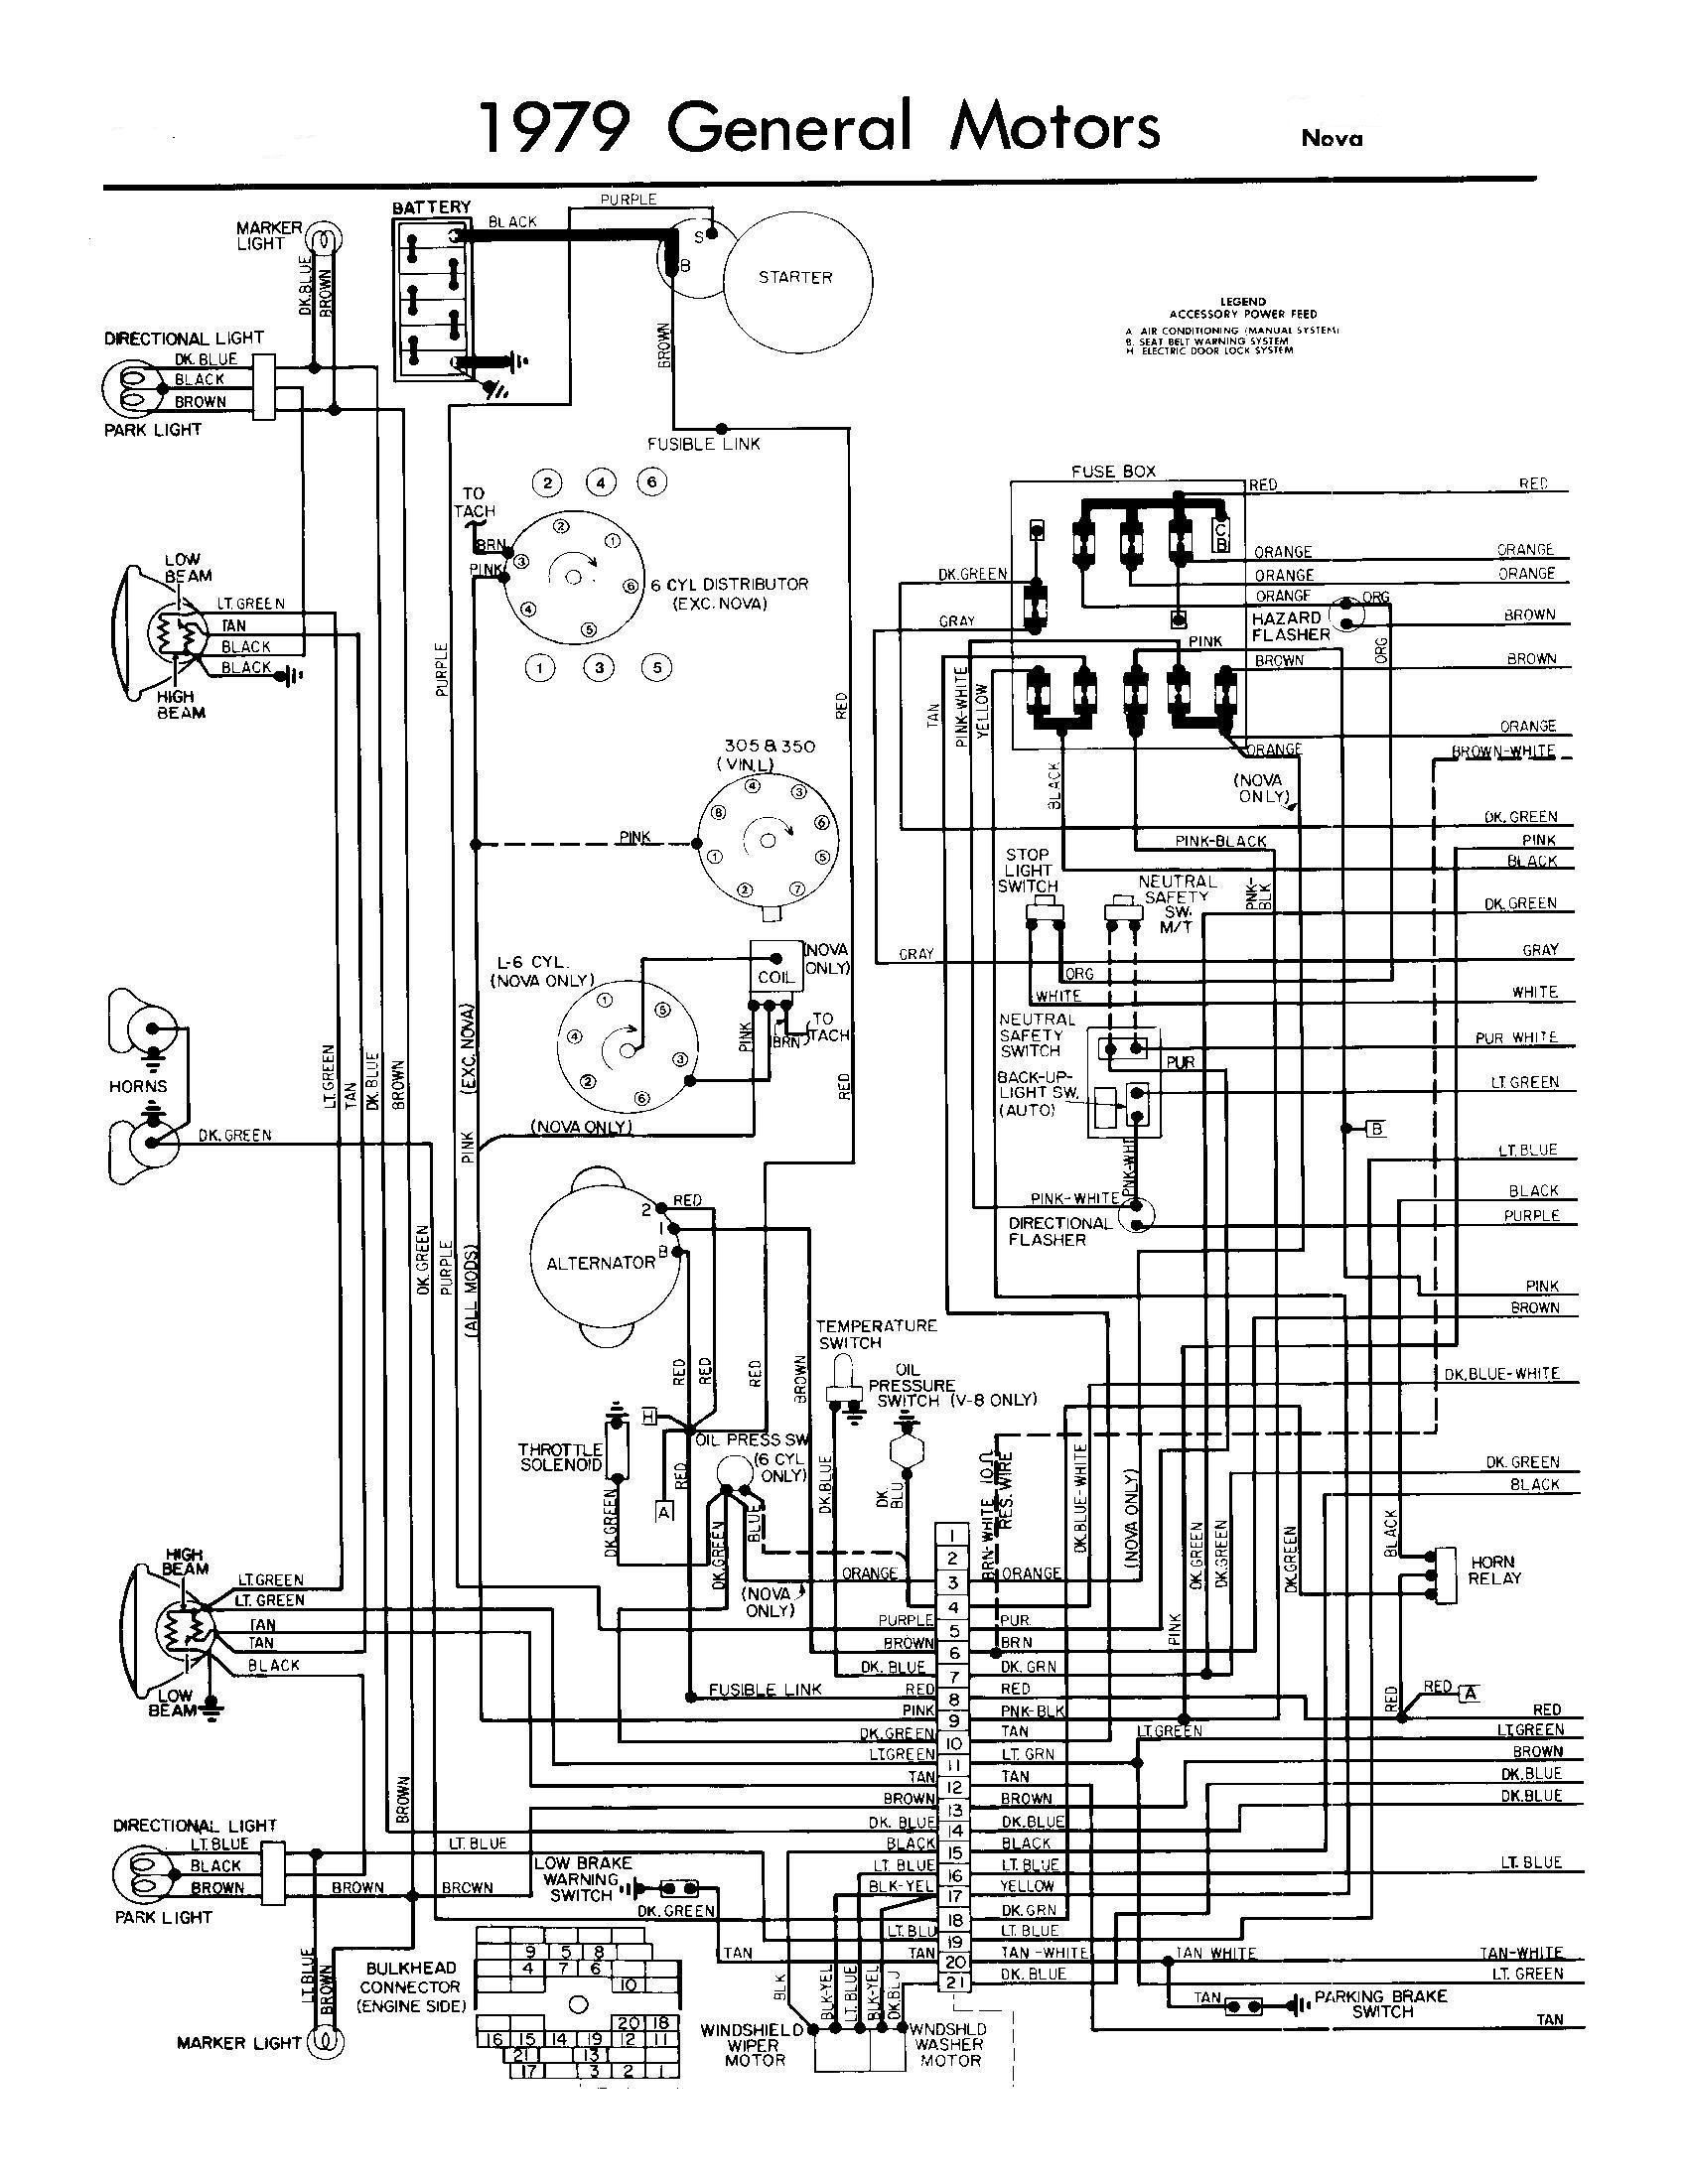 All Generation Wiring Schematics Chevy Nova Forum Custom 79 Gmc Truck